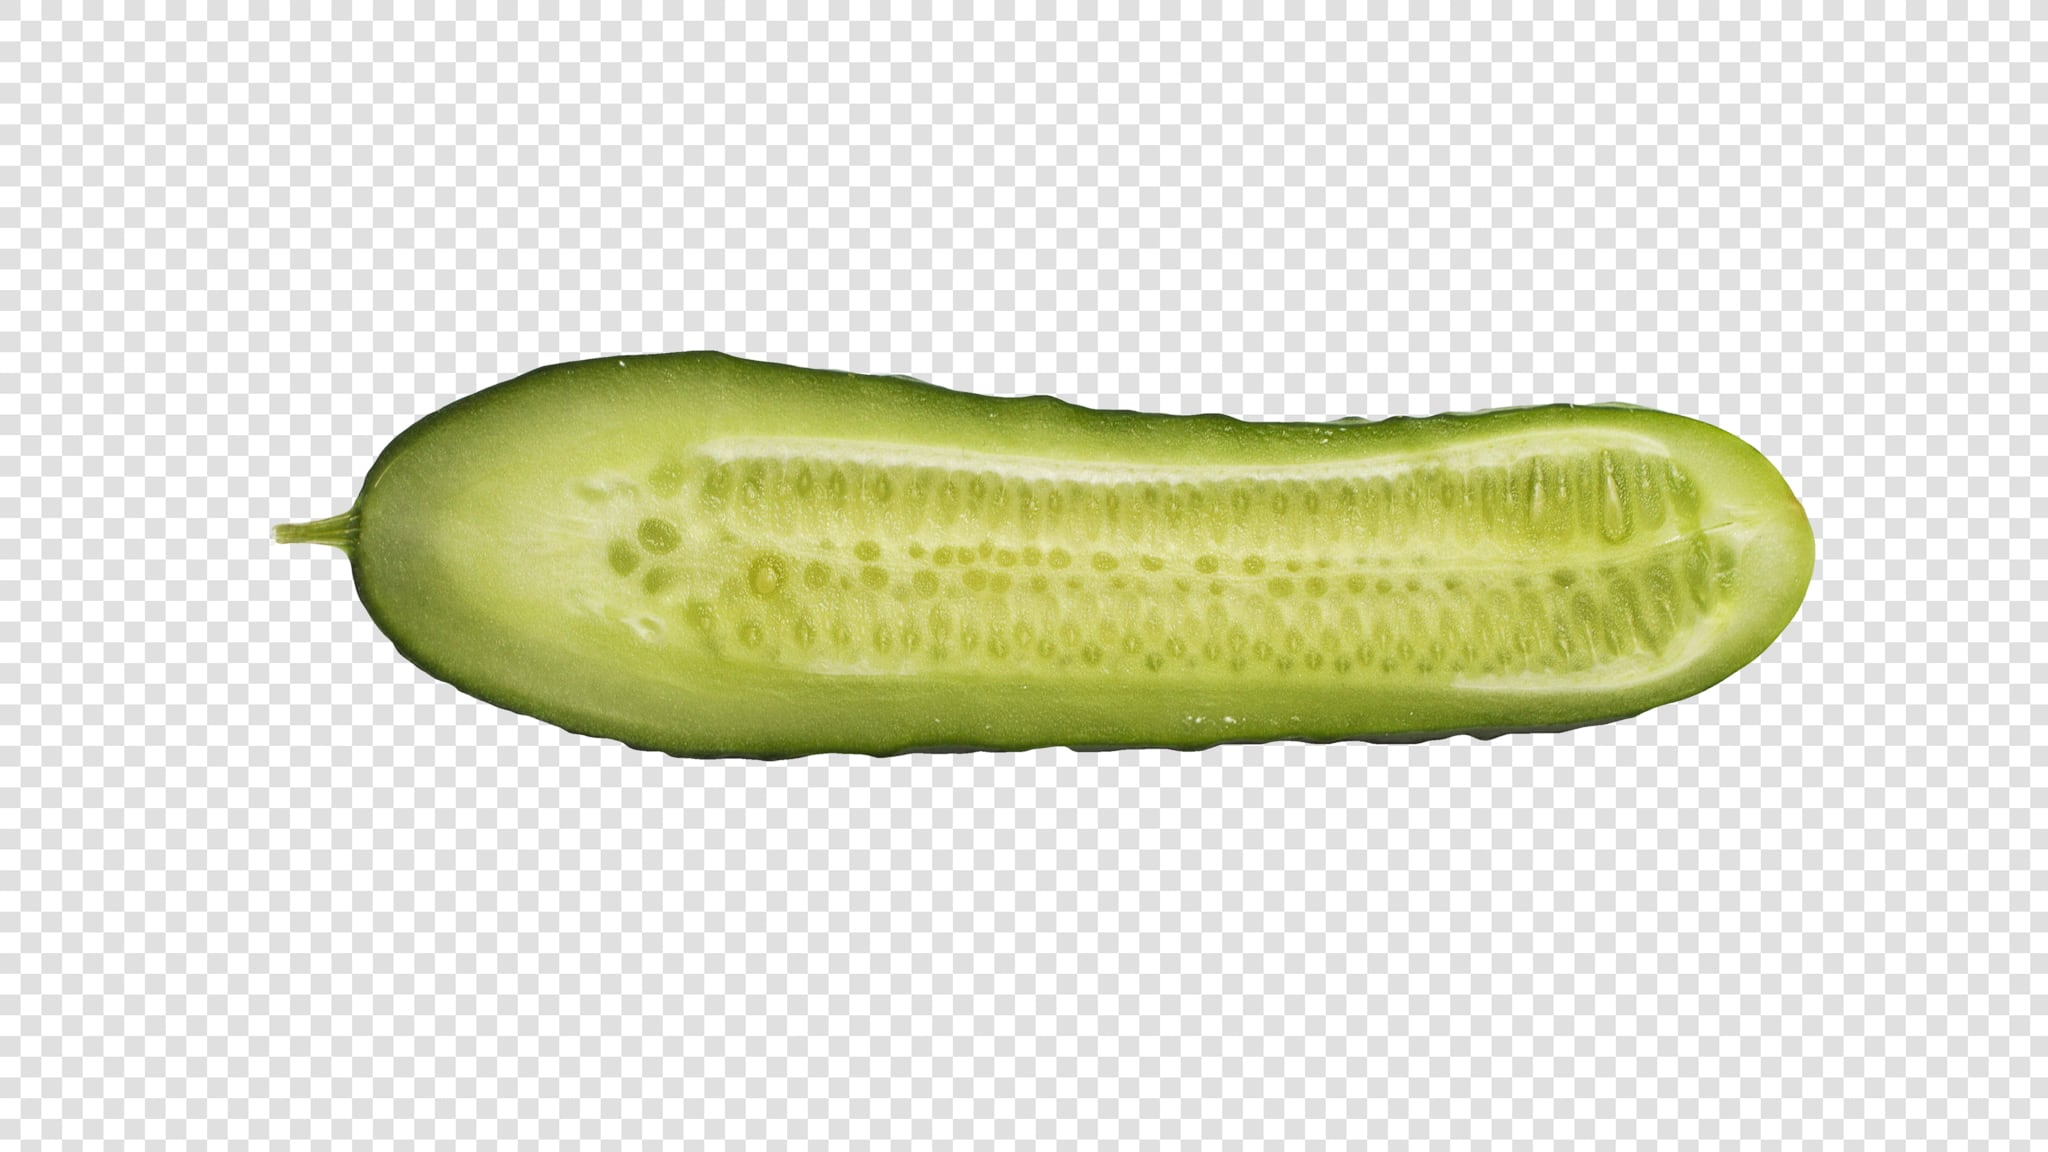 Cucumber image asset with transparent background